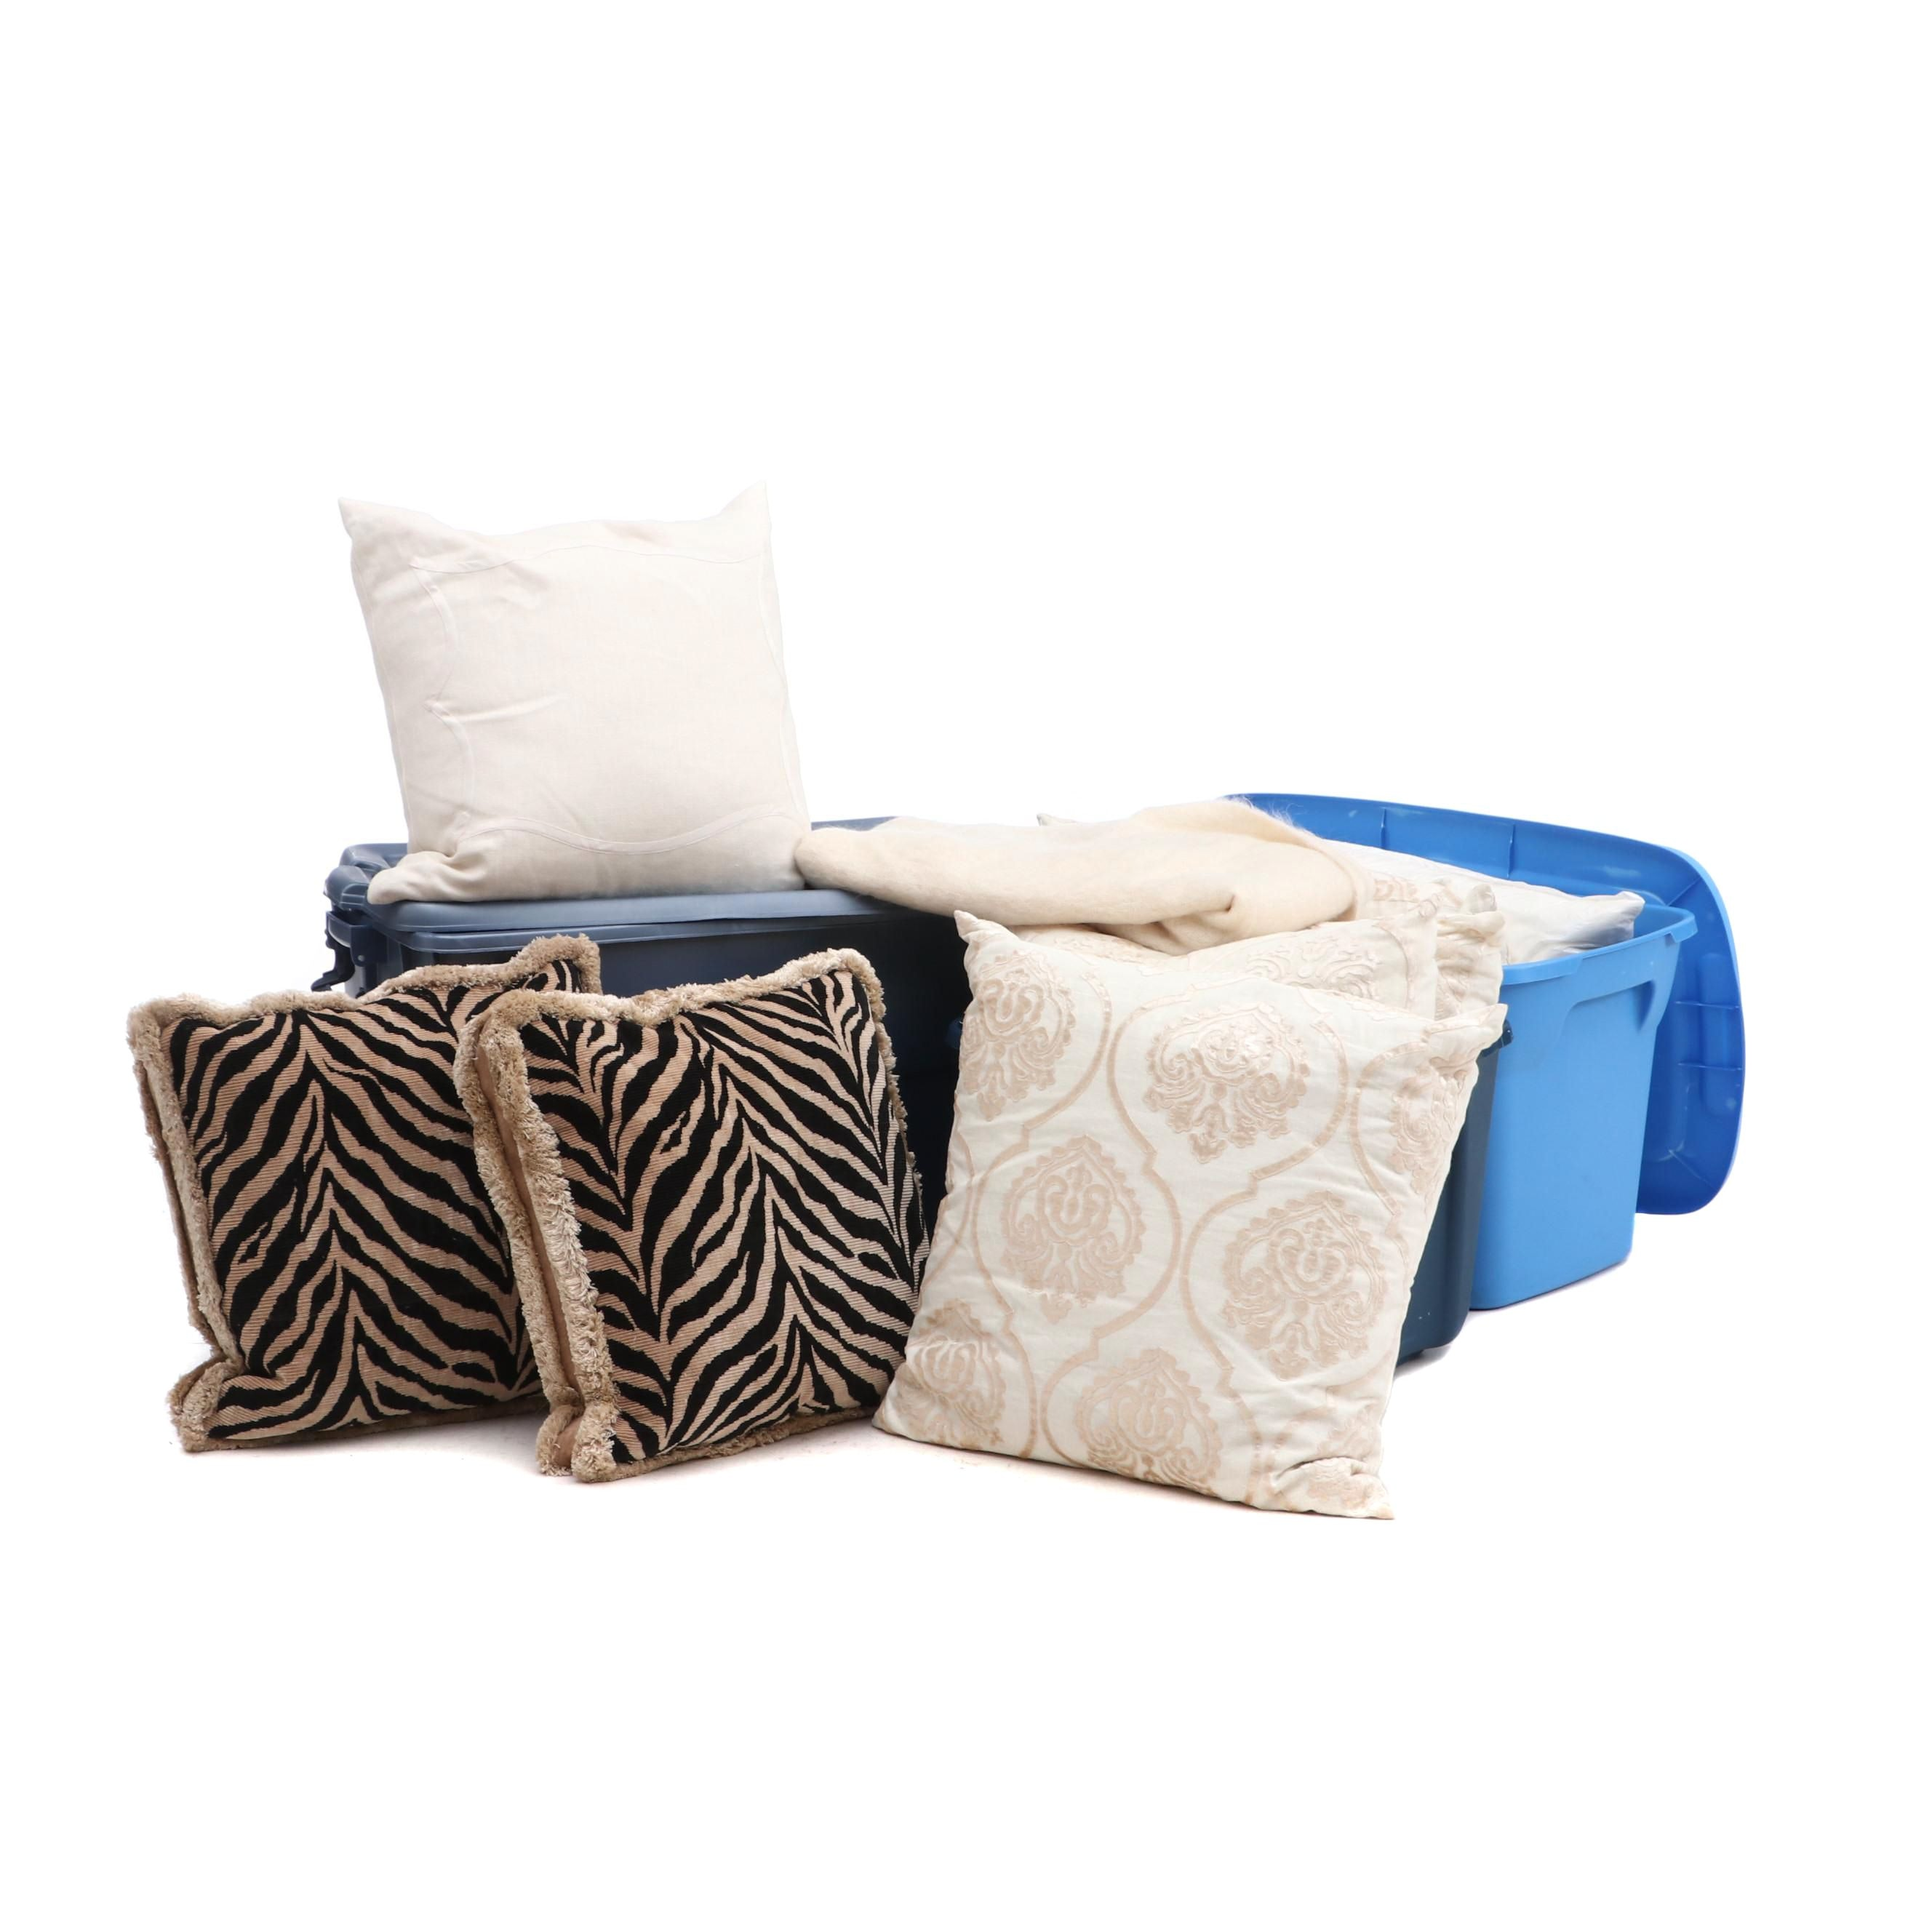 Assorted Accents Pillows and Throw featuring Aerin Lauder